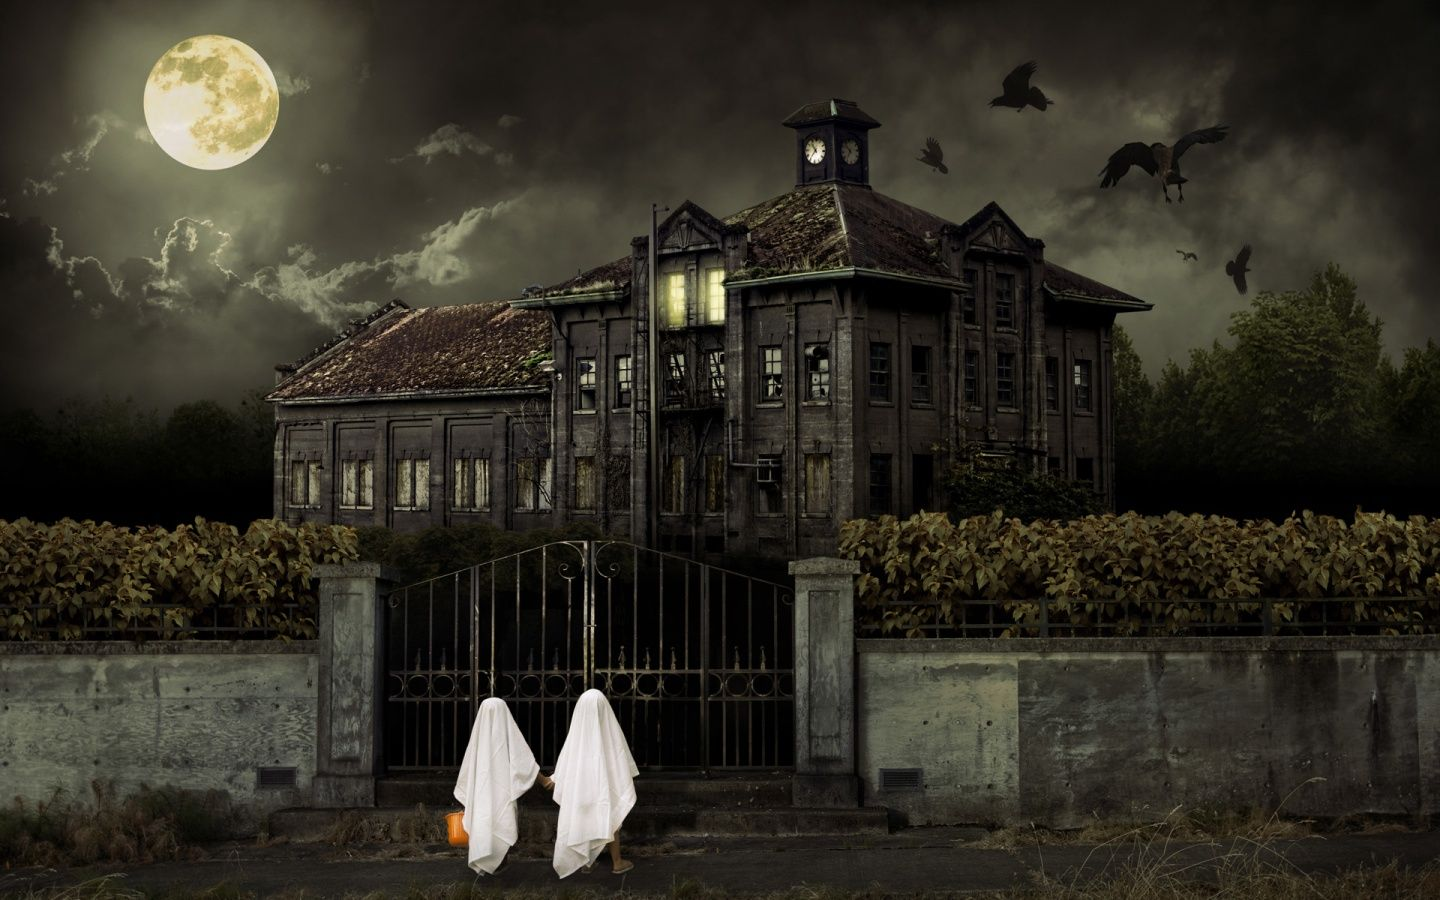 Exceptional Halloween Haunted House Wallpaper | Halloween Haunted House HD Wallpaper,  Haunted HD Wallpaper, 3D Horror .